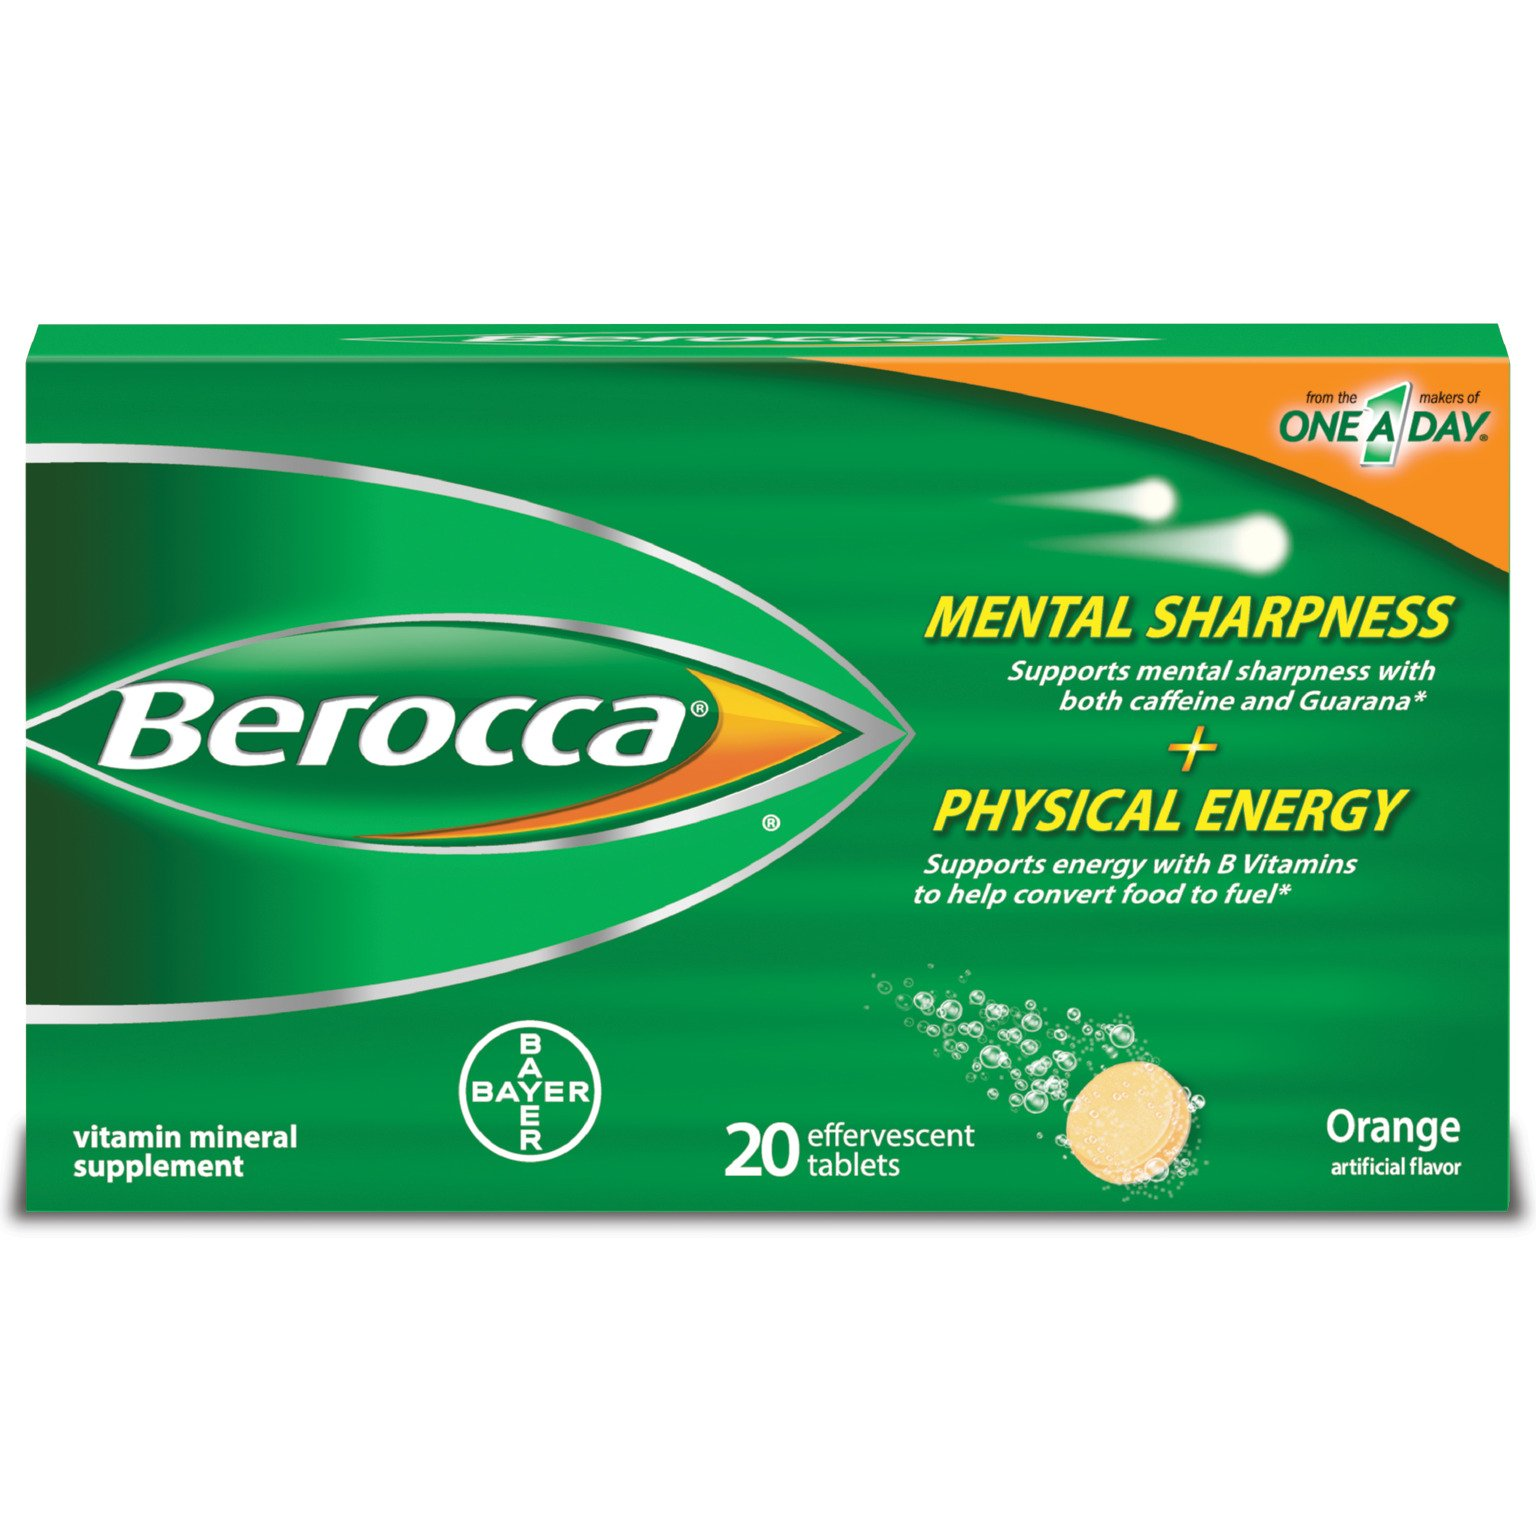 Berocca with Caffeine and Guarana to Support Mental Sharpness and B Vitamins to Support Physical Energy, Orange Flavor, Effervescent Tablets, 20 Count by Berocca